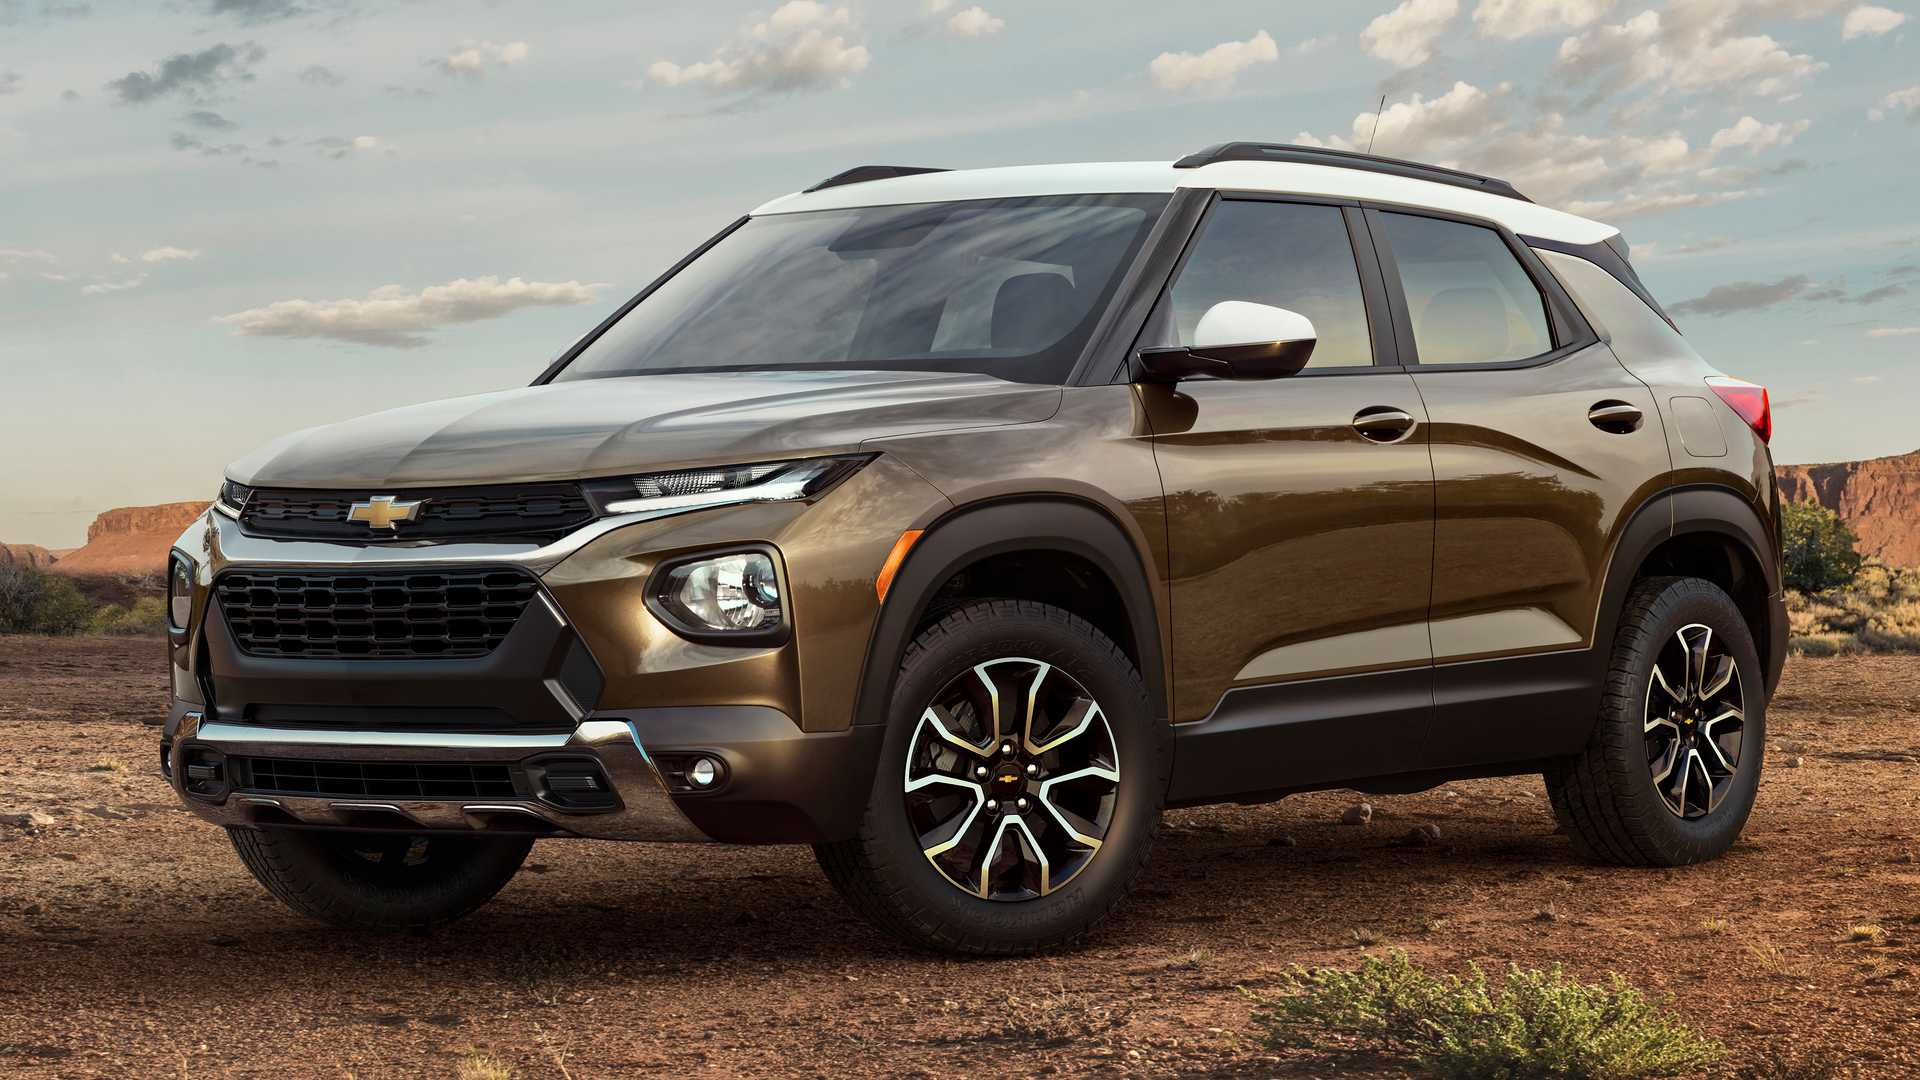 2021 Chevy Trailblazer Pricing Starts At $19,995, Tops Out 2022 Chevy Blazer Rs Start Up, Tires, Trim